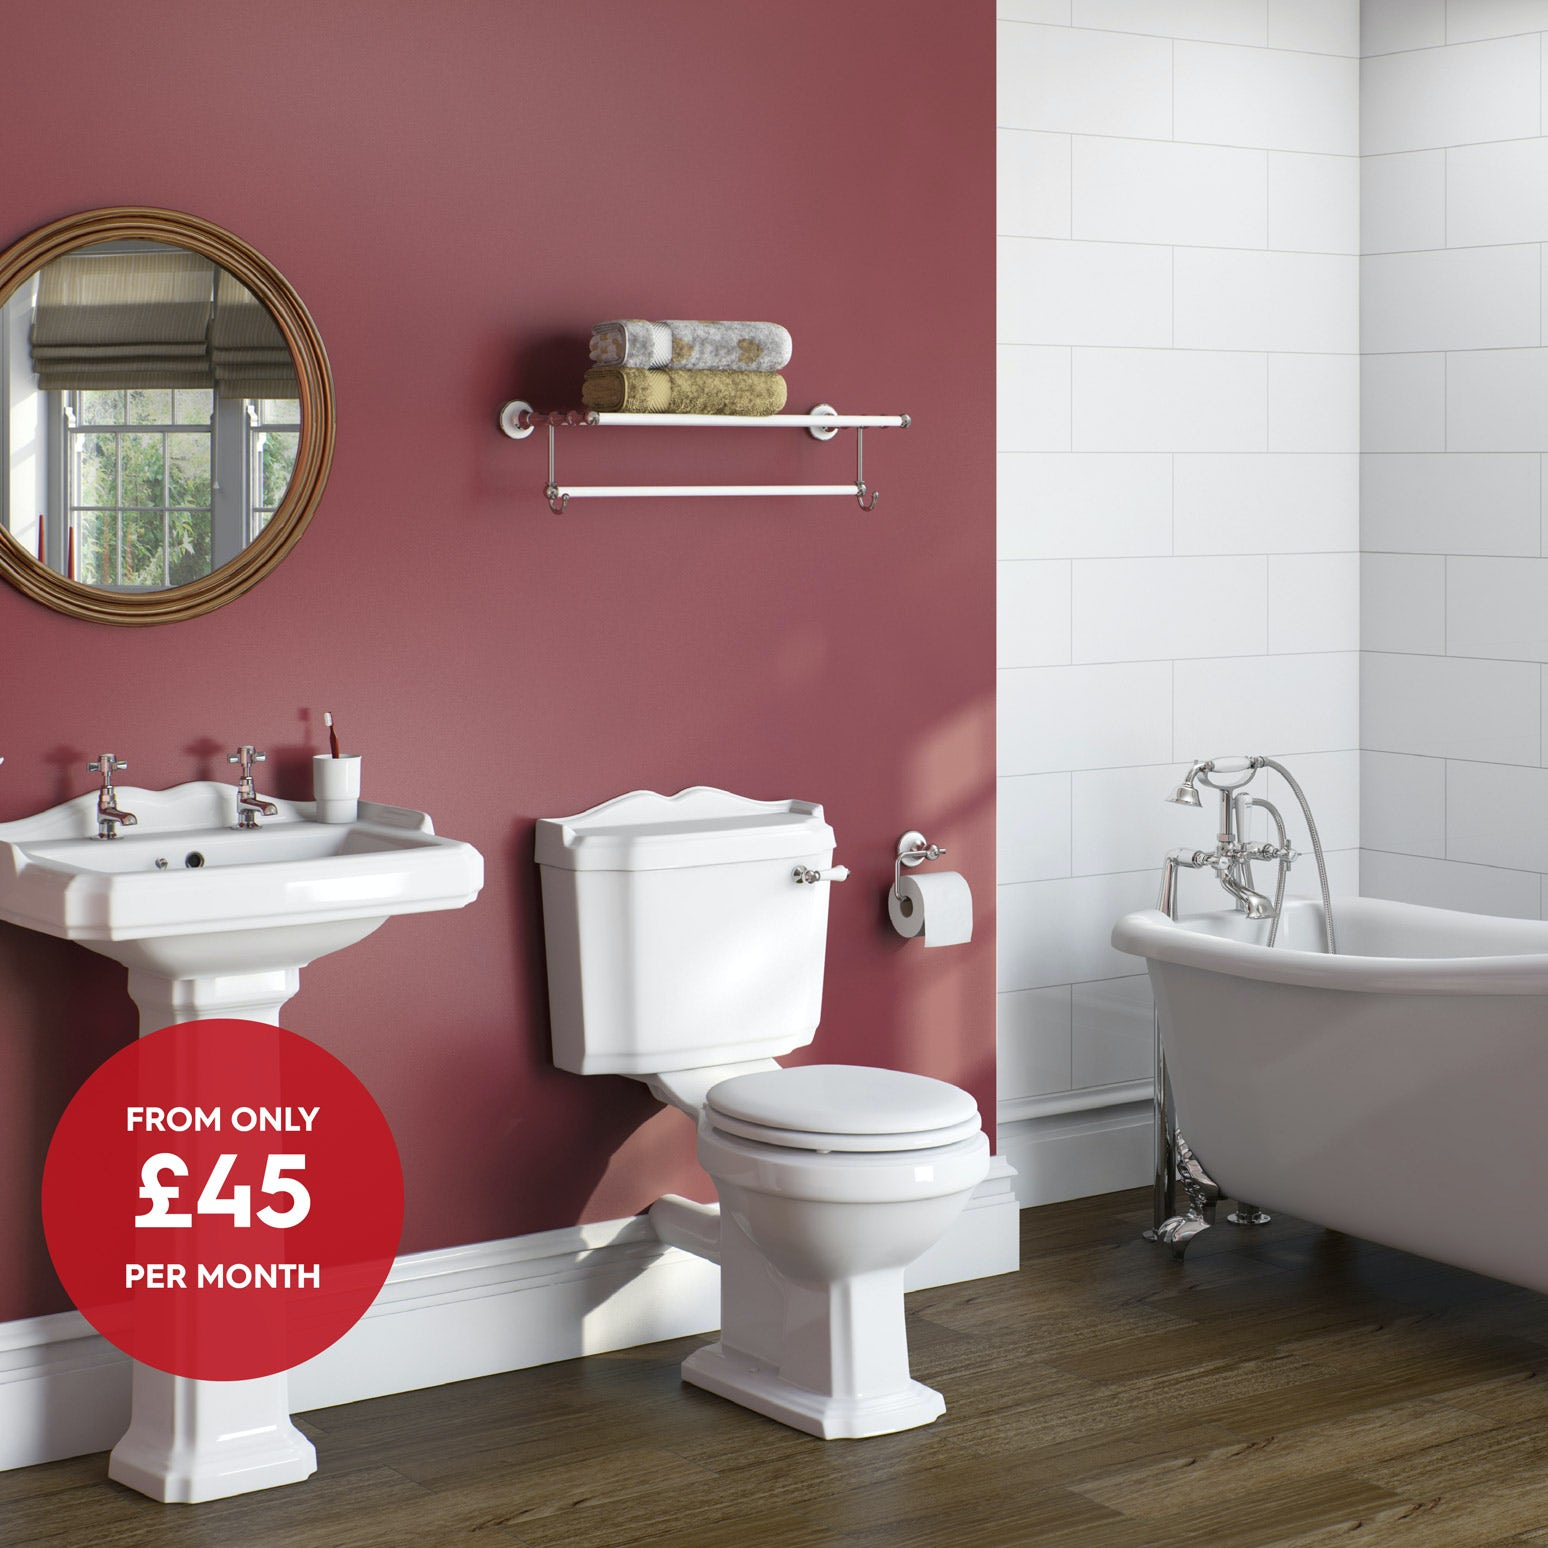 The Bath Co. Winchester complete bathroom suite with roll top bath and taps